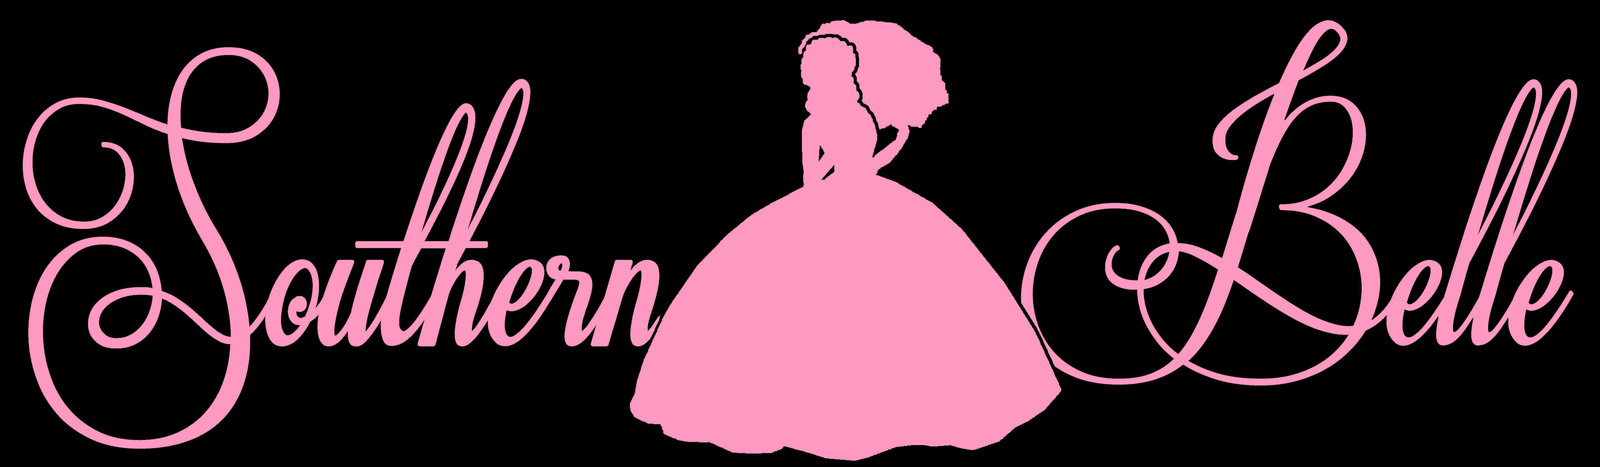 Southern belle silhouette clipart banner transparent download Southern belle silhouette clipart - ClipartFest banner transparent download